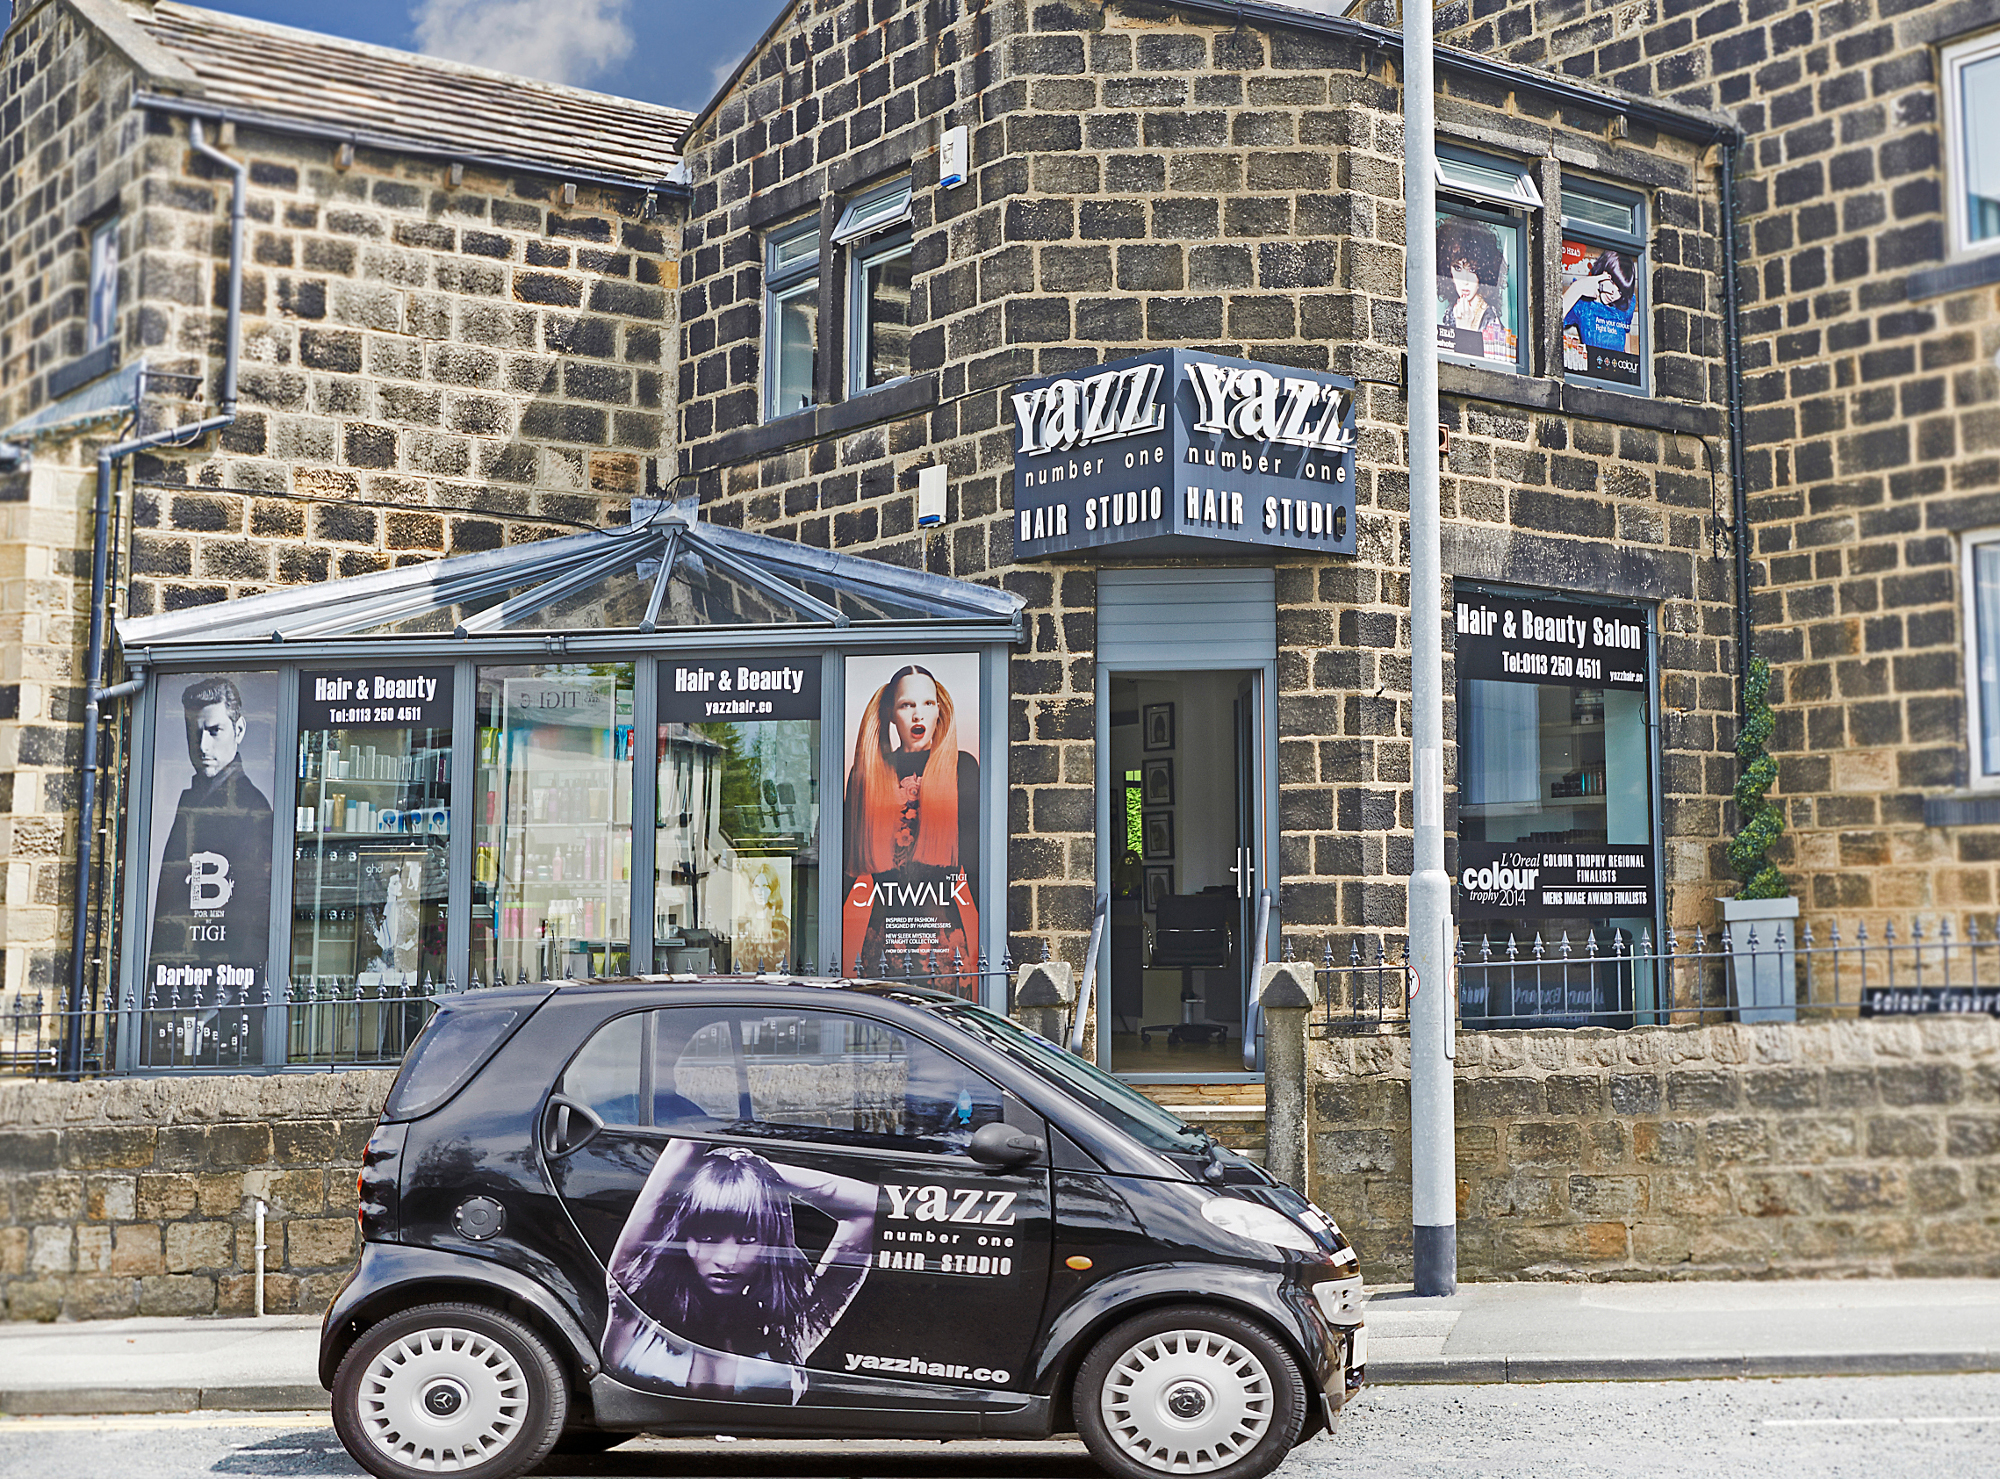 Yazz hair and beauty salon, Rawdon, Leeds